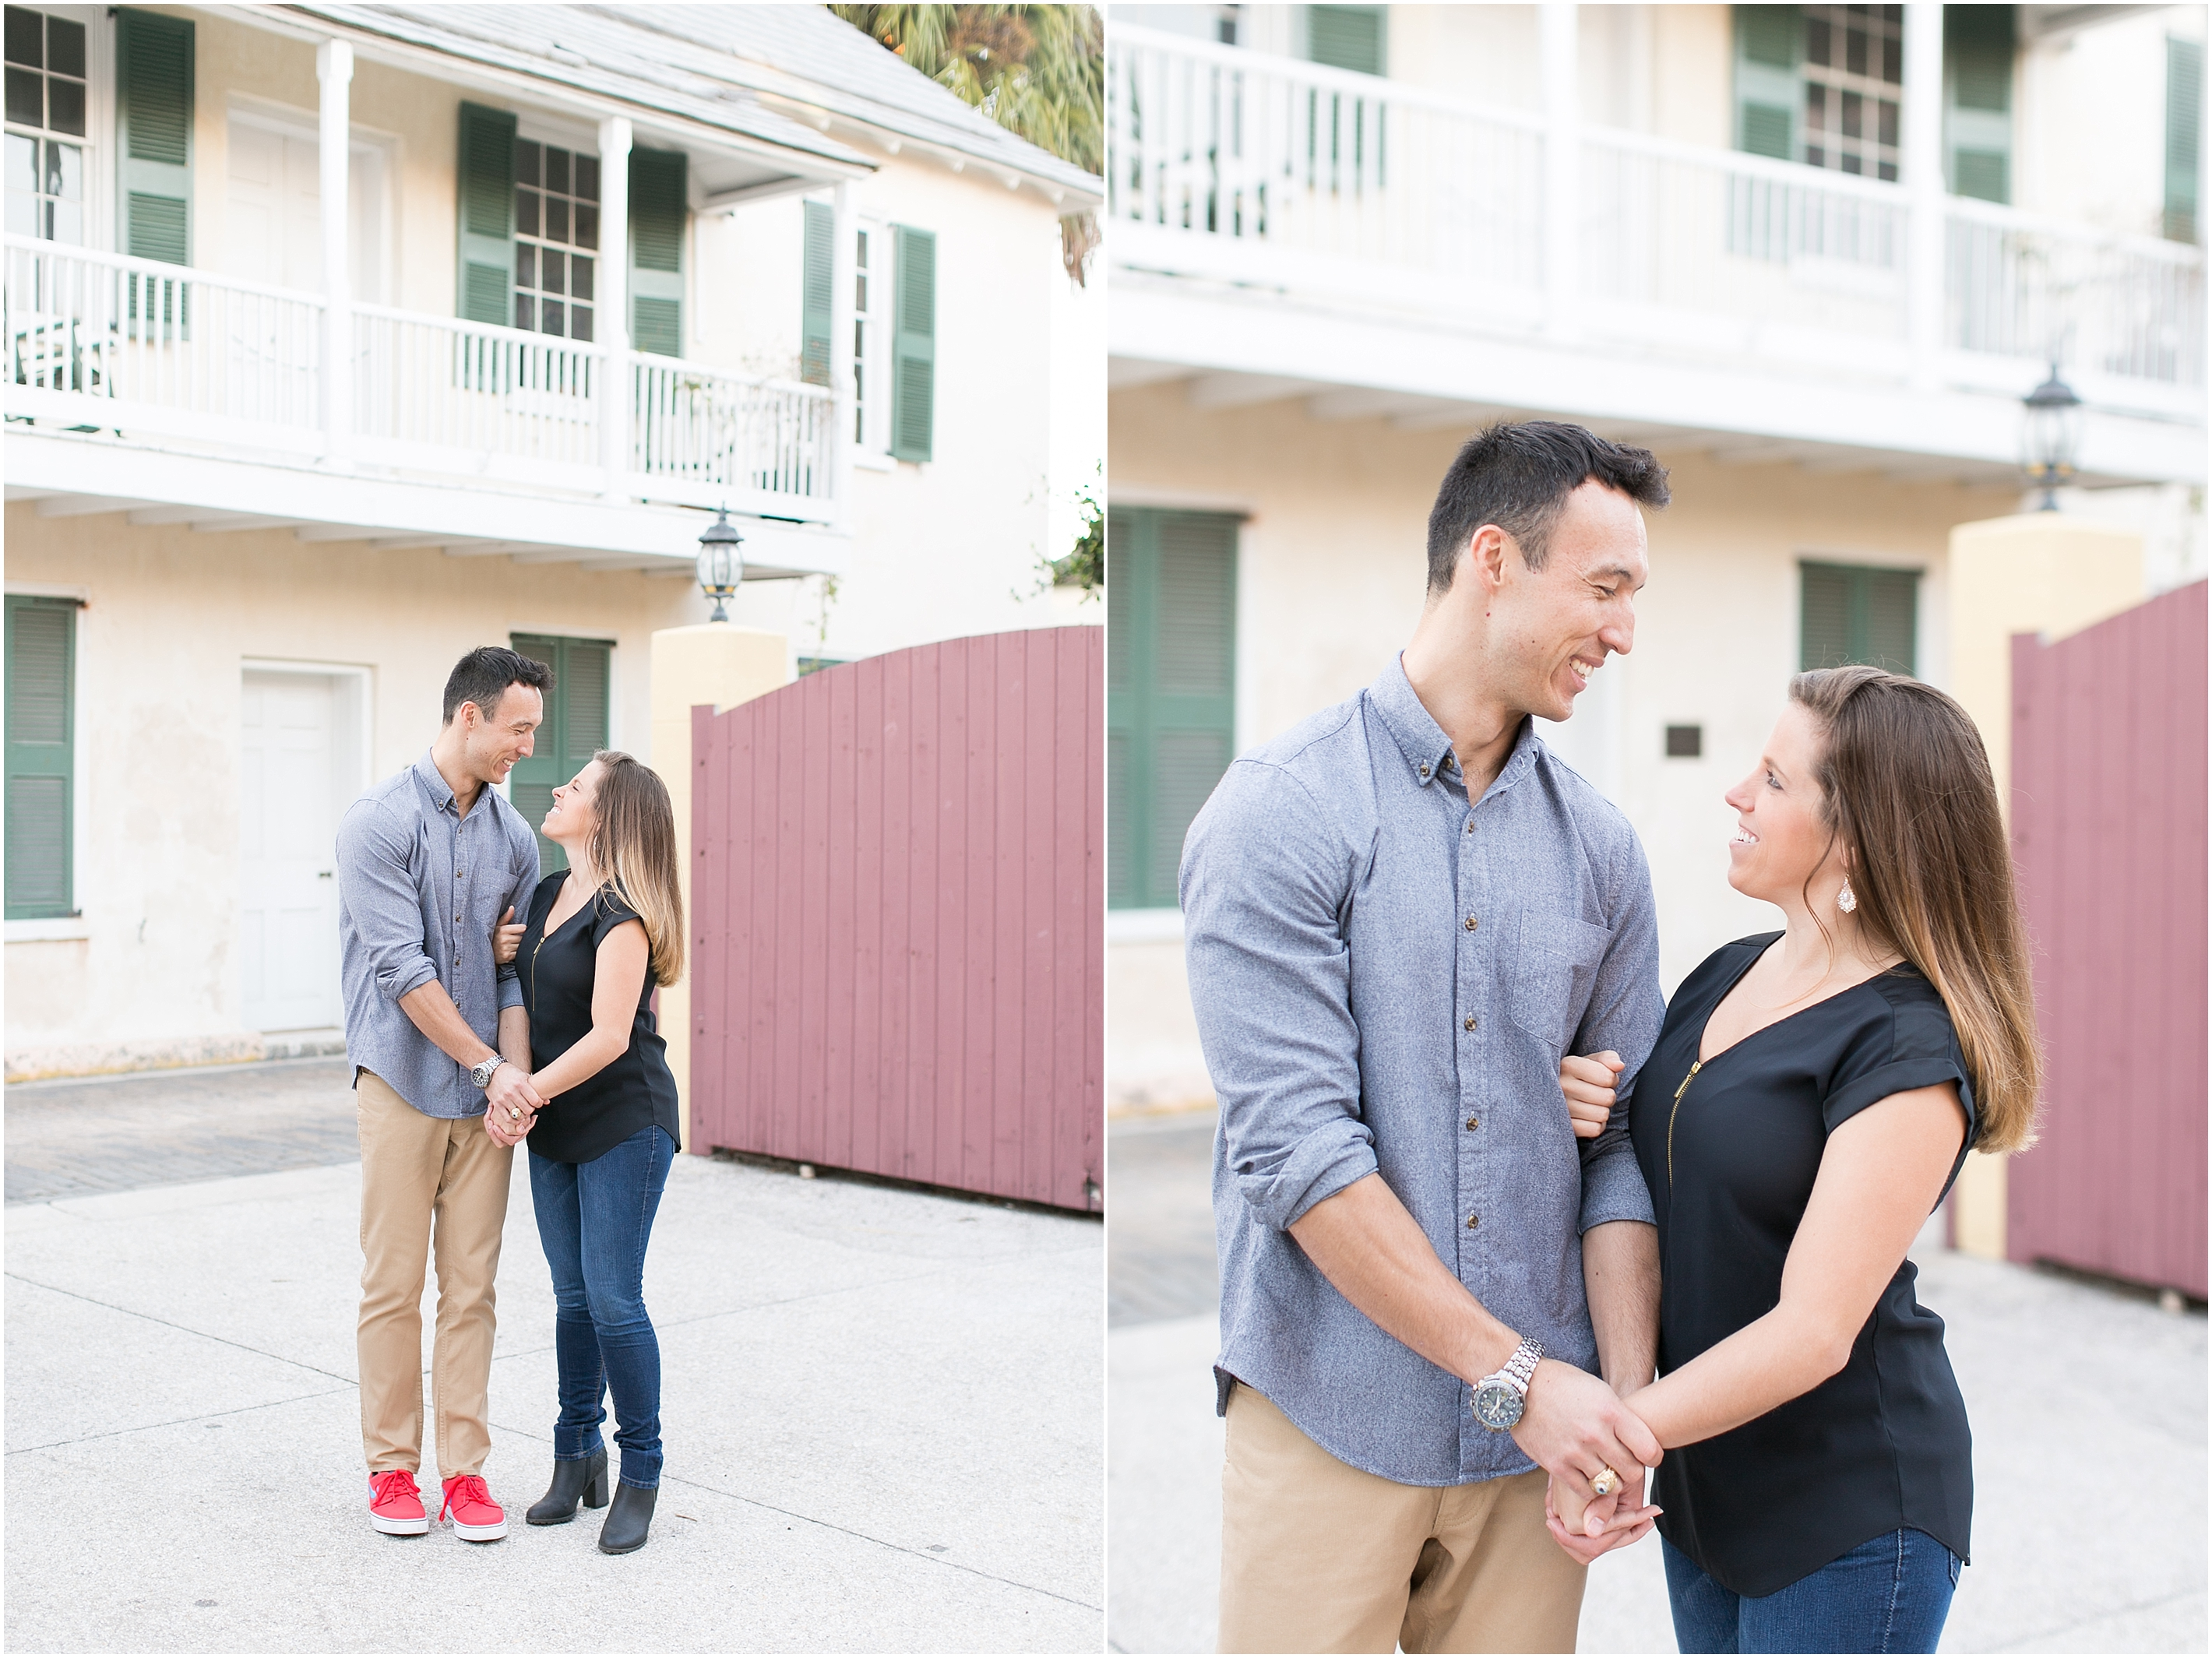 va_jessica_ryan_photography_st_augustine_florida_destination_engagement_photography_0137